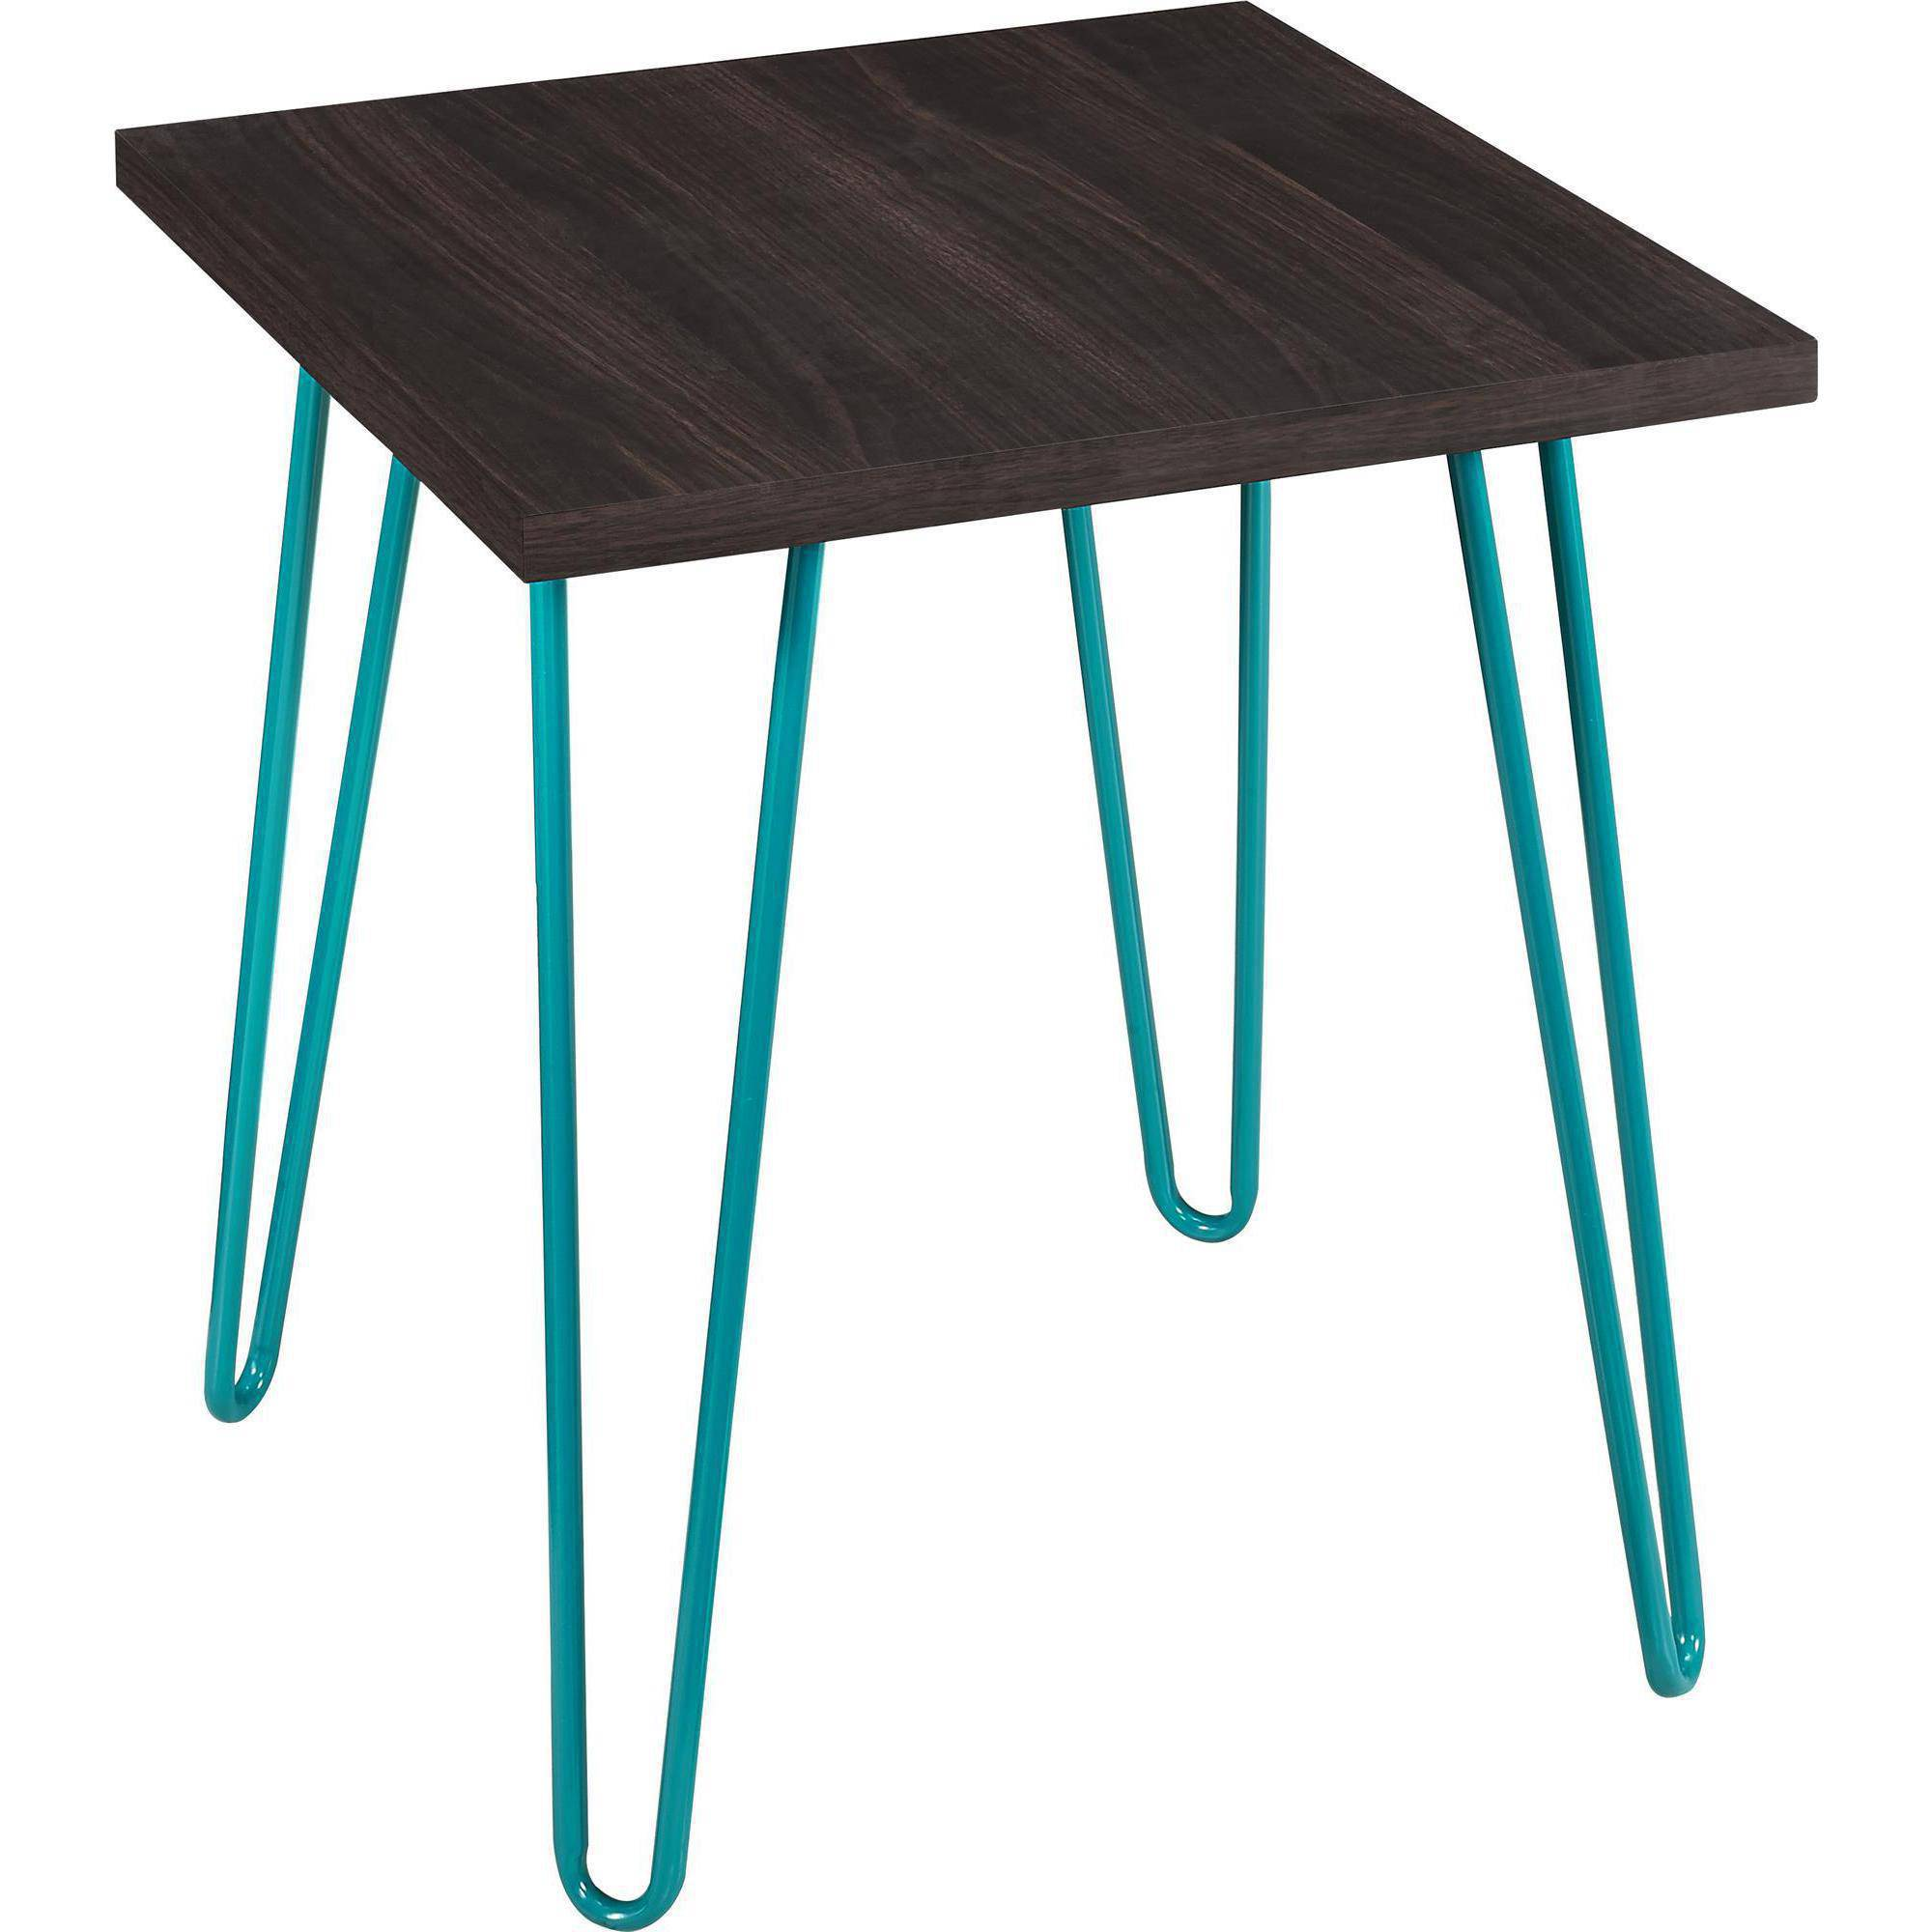 enchanting turquoise end table target tablecloths gold blue white tablecloth oval outdoor toddlers foot silver column for plaid pub dining bronze card css pdg threshold square